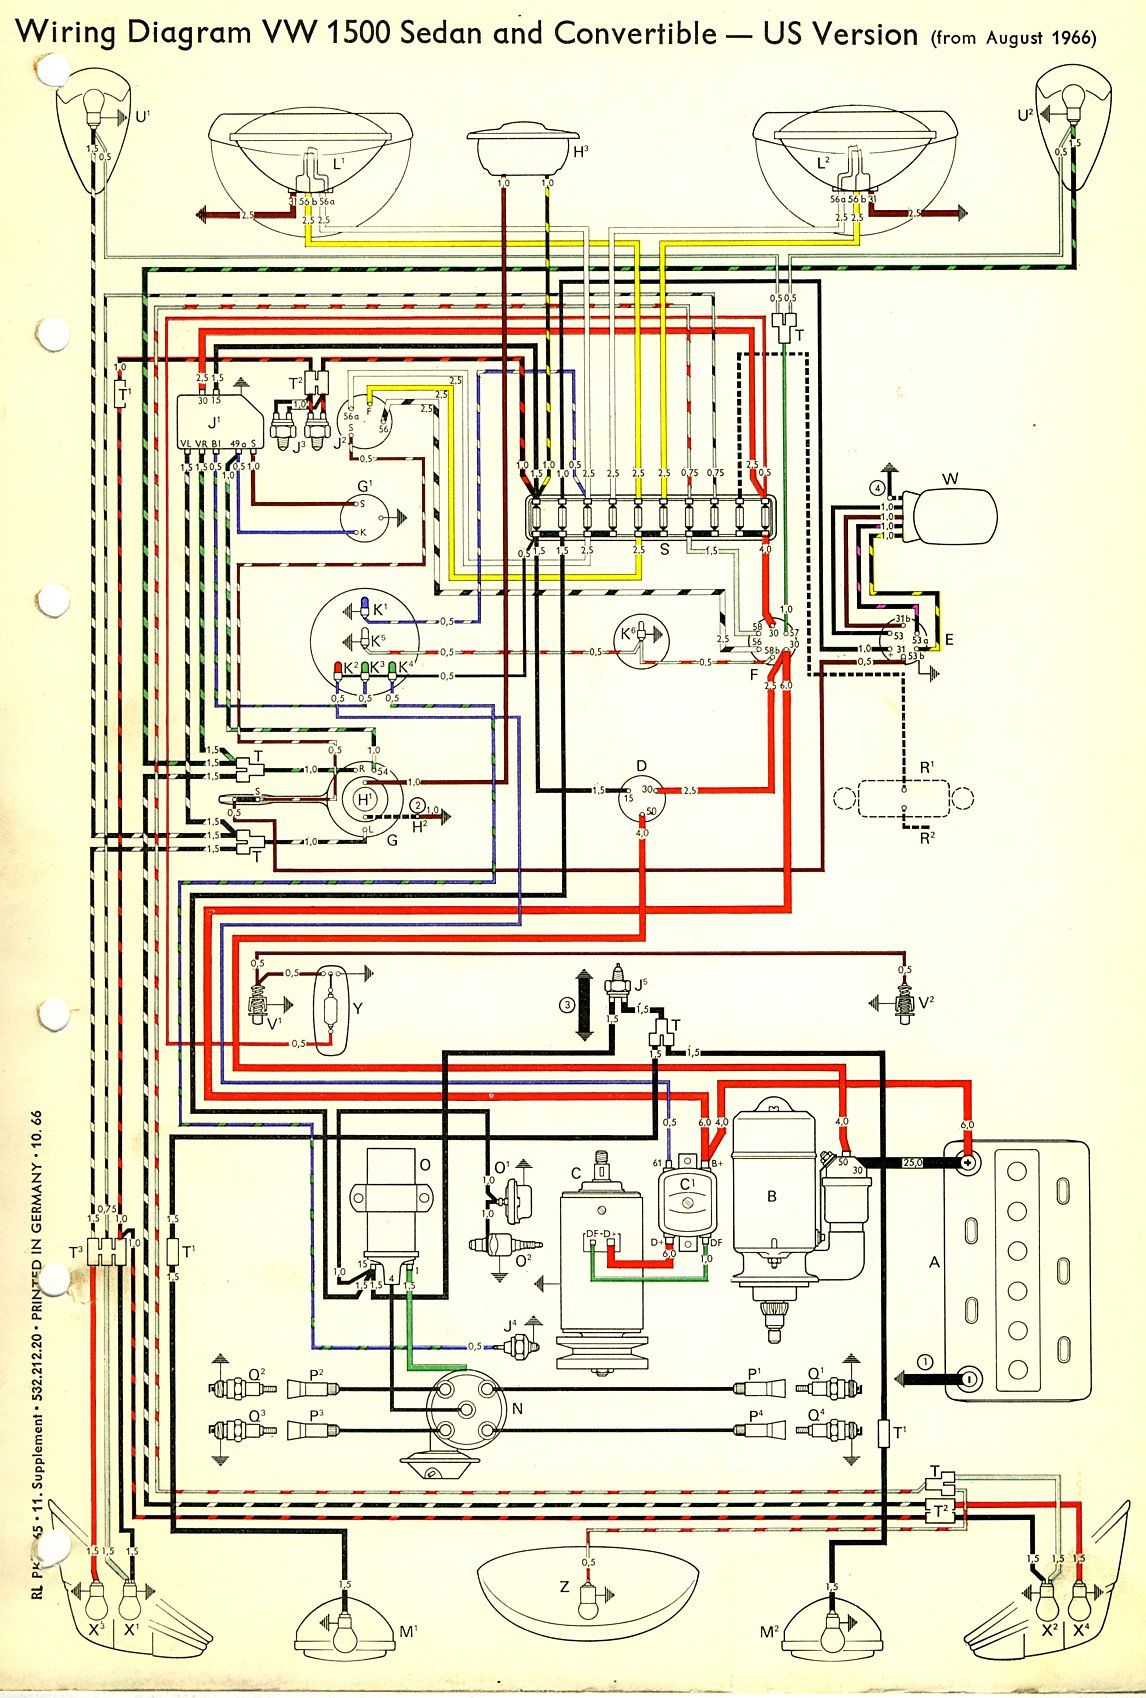 1adf990c0efb617c789fdd21338448b0 1967 beetle wiring diagram (usa) thegoldenbug com best 1967 vw 1971 vw bus wiring diagram at bayanpartner.co